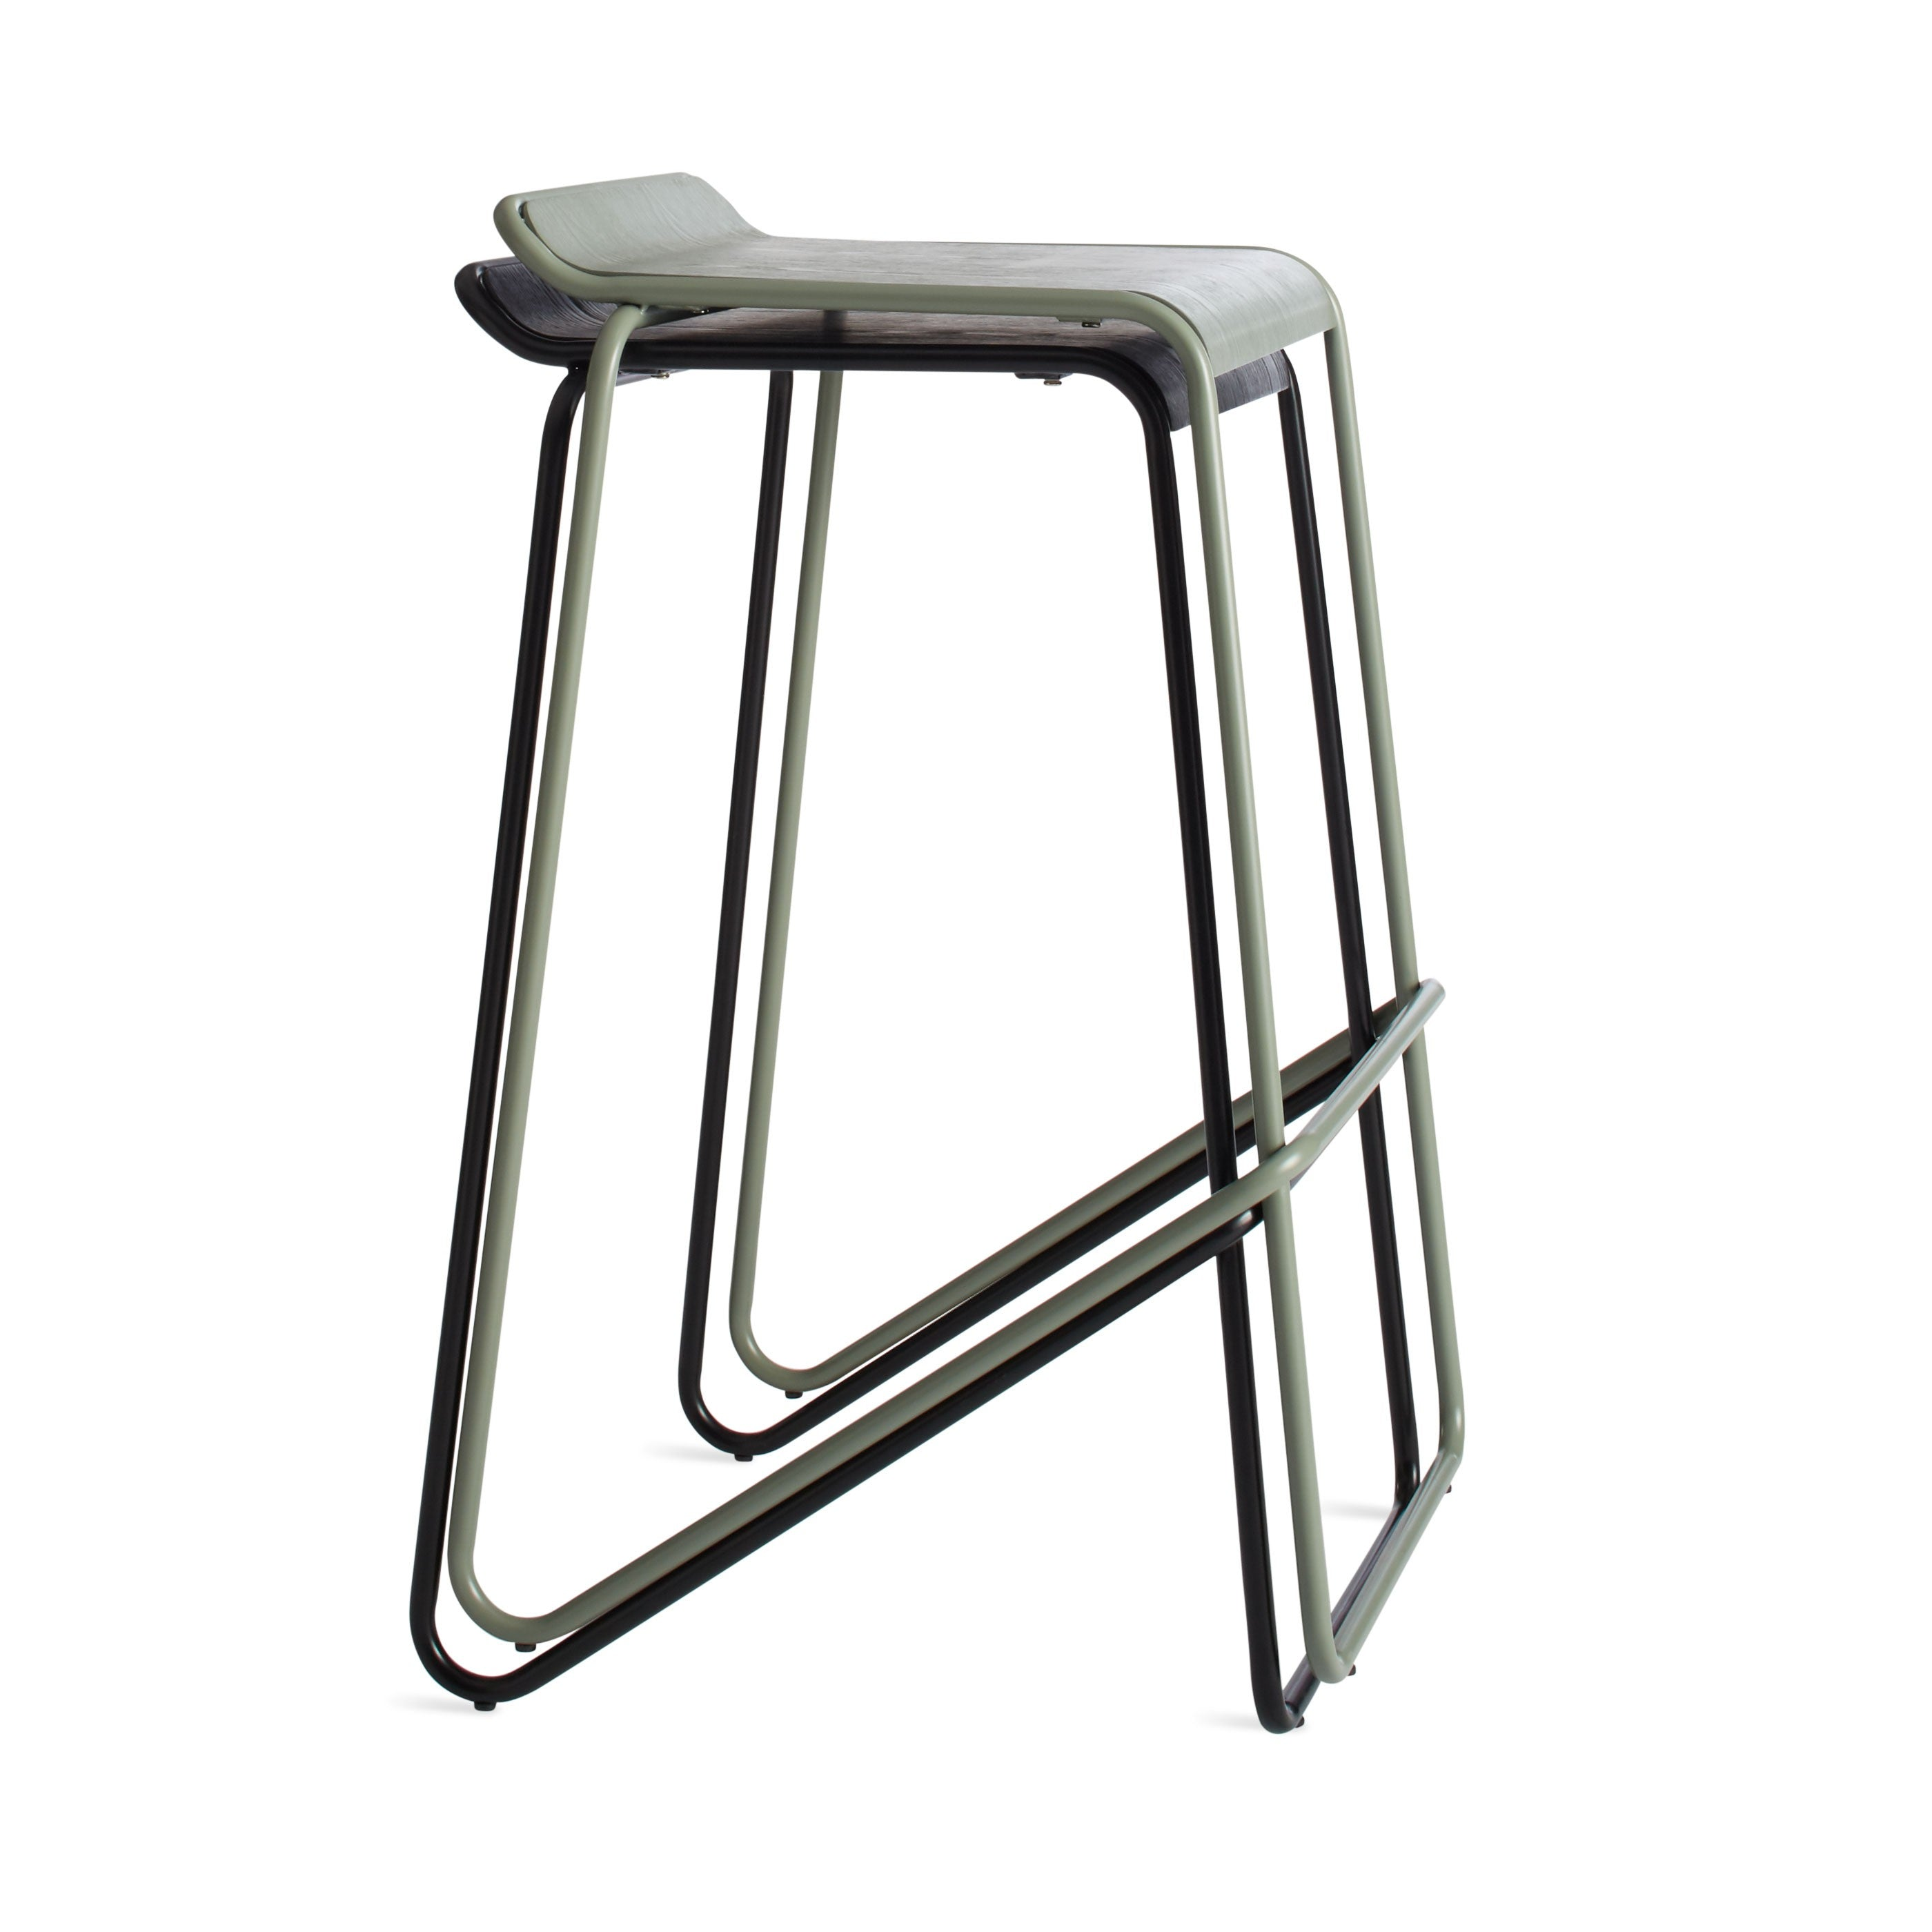 wood cooper stool metal rest steel stools with foot bar tall and black stackable seat frame solid